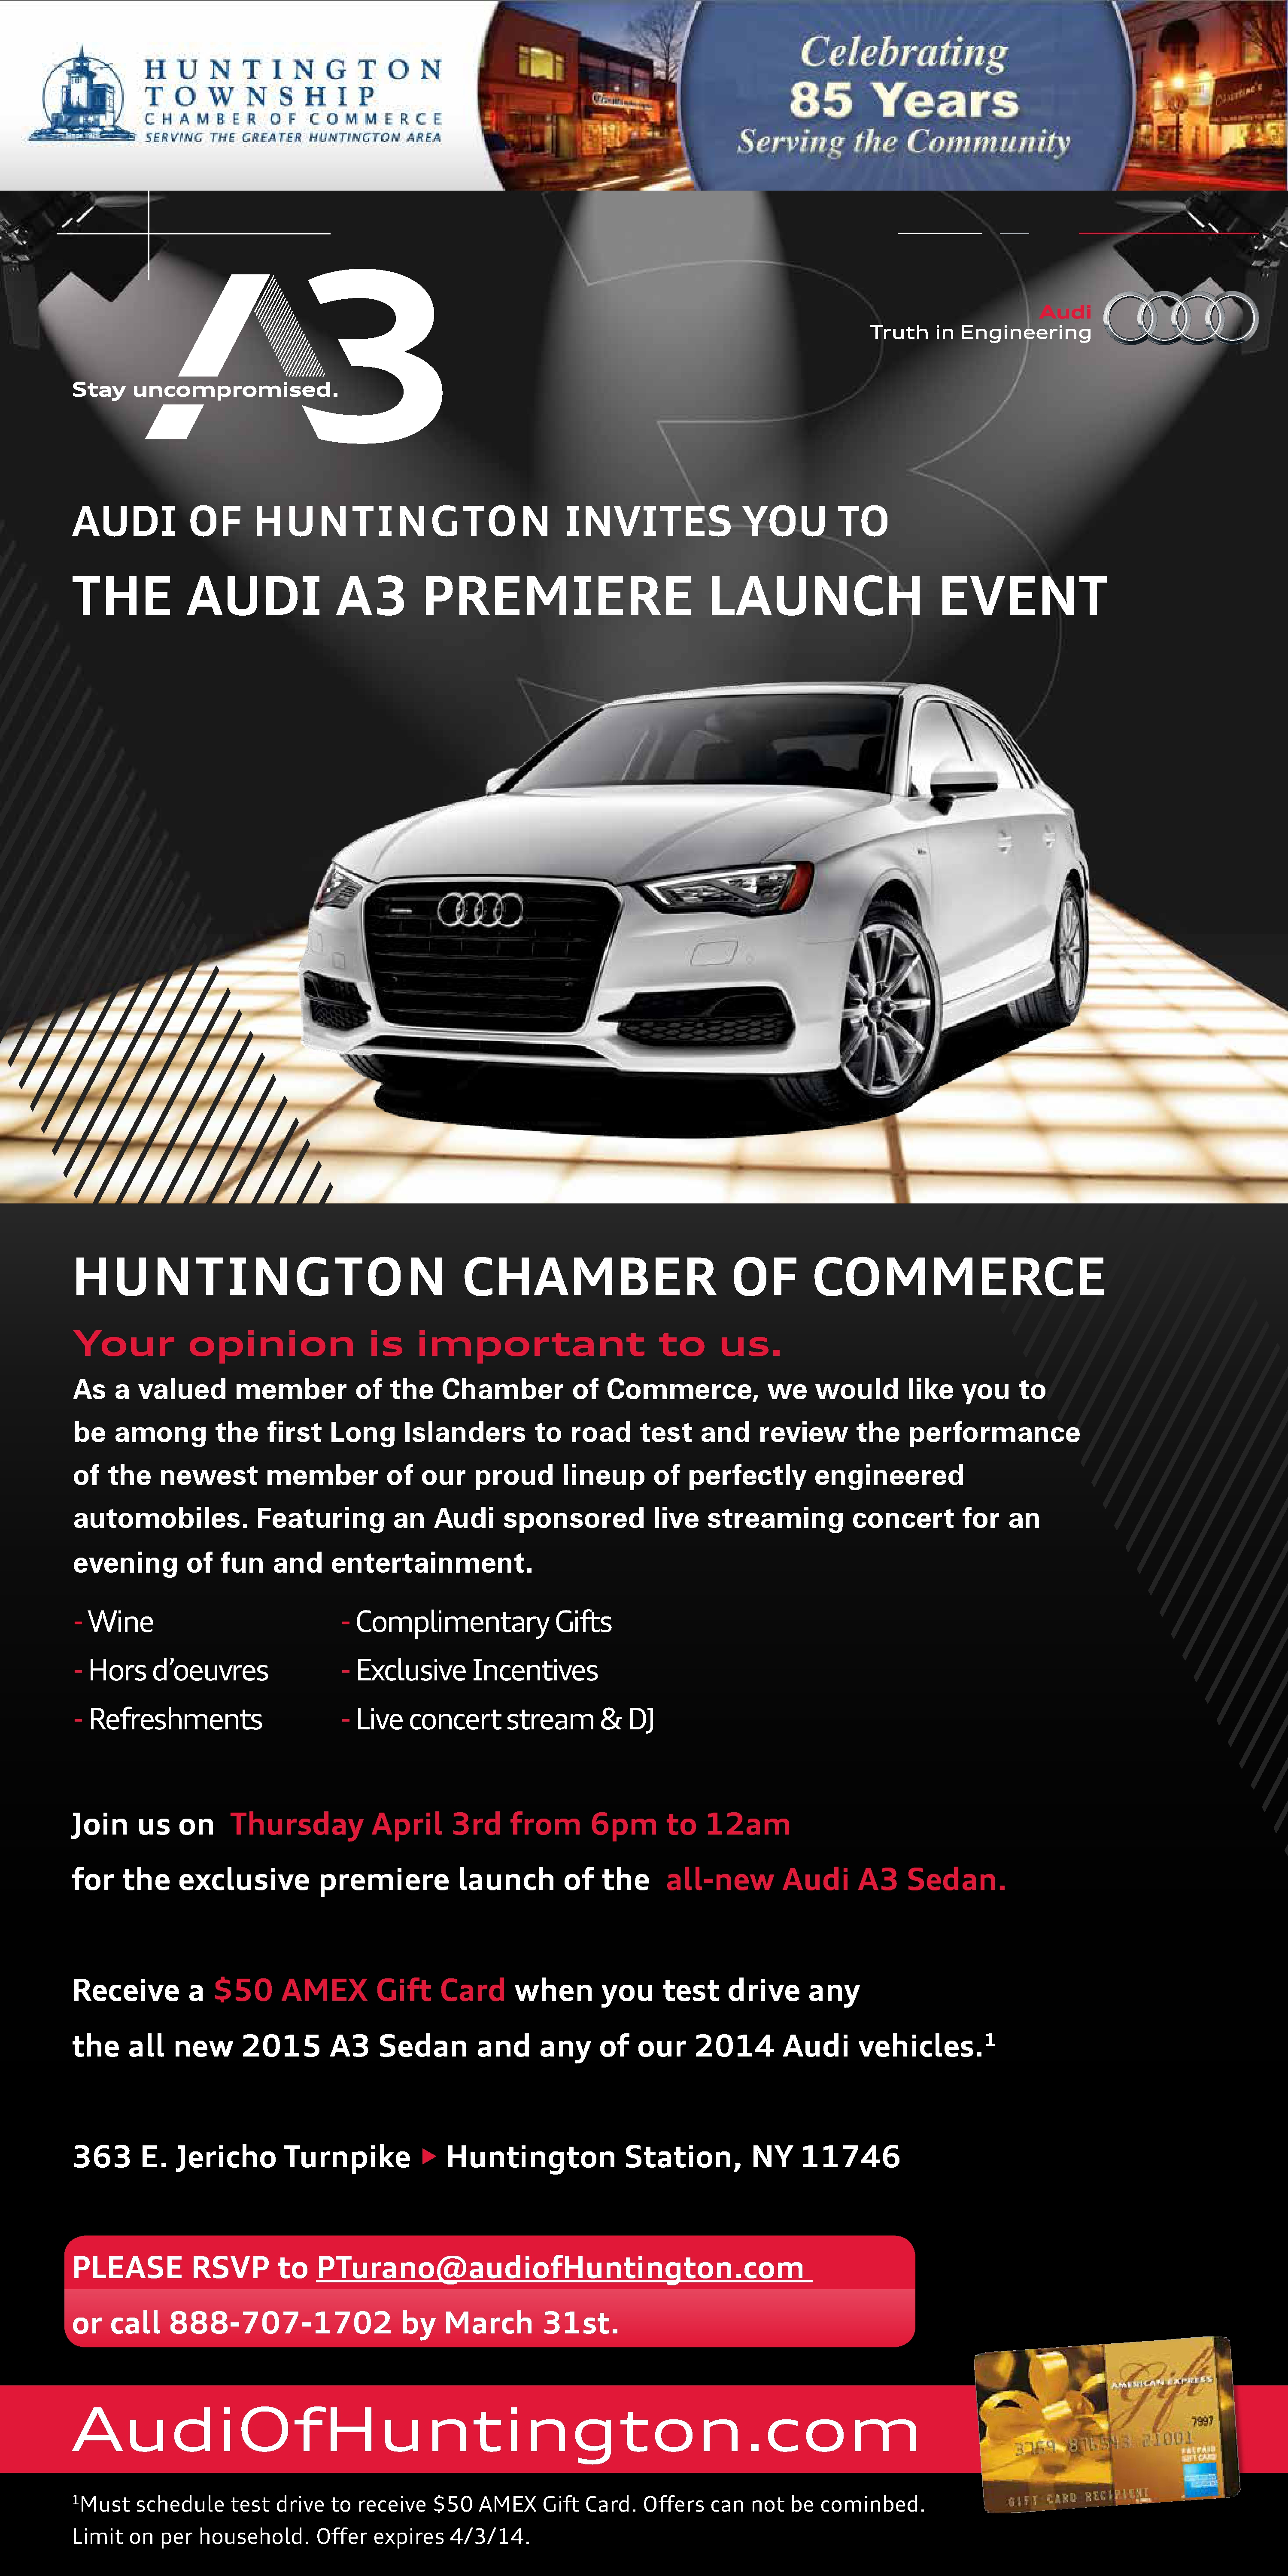 Audi Of Huntington >> Audi Of Huntington Invited You To The Audi A3 Premier Launch